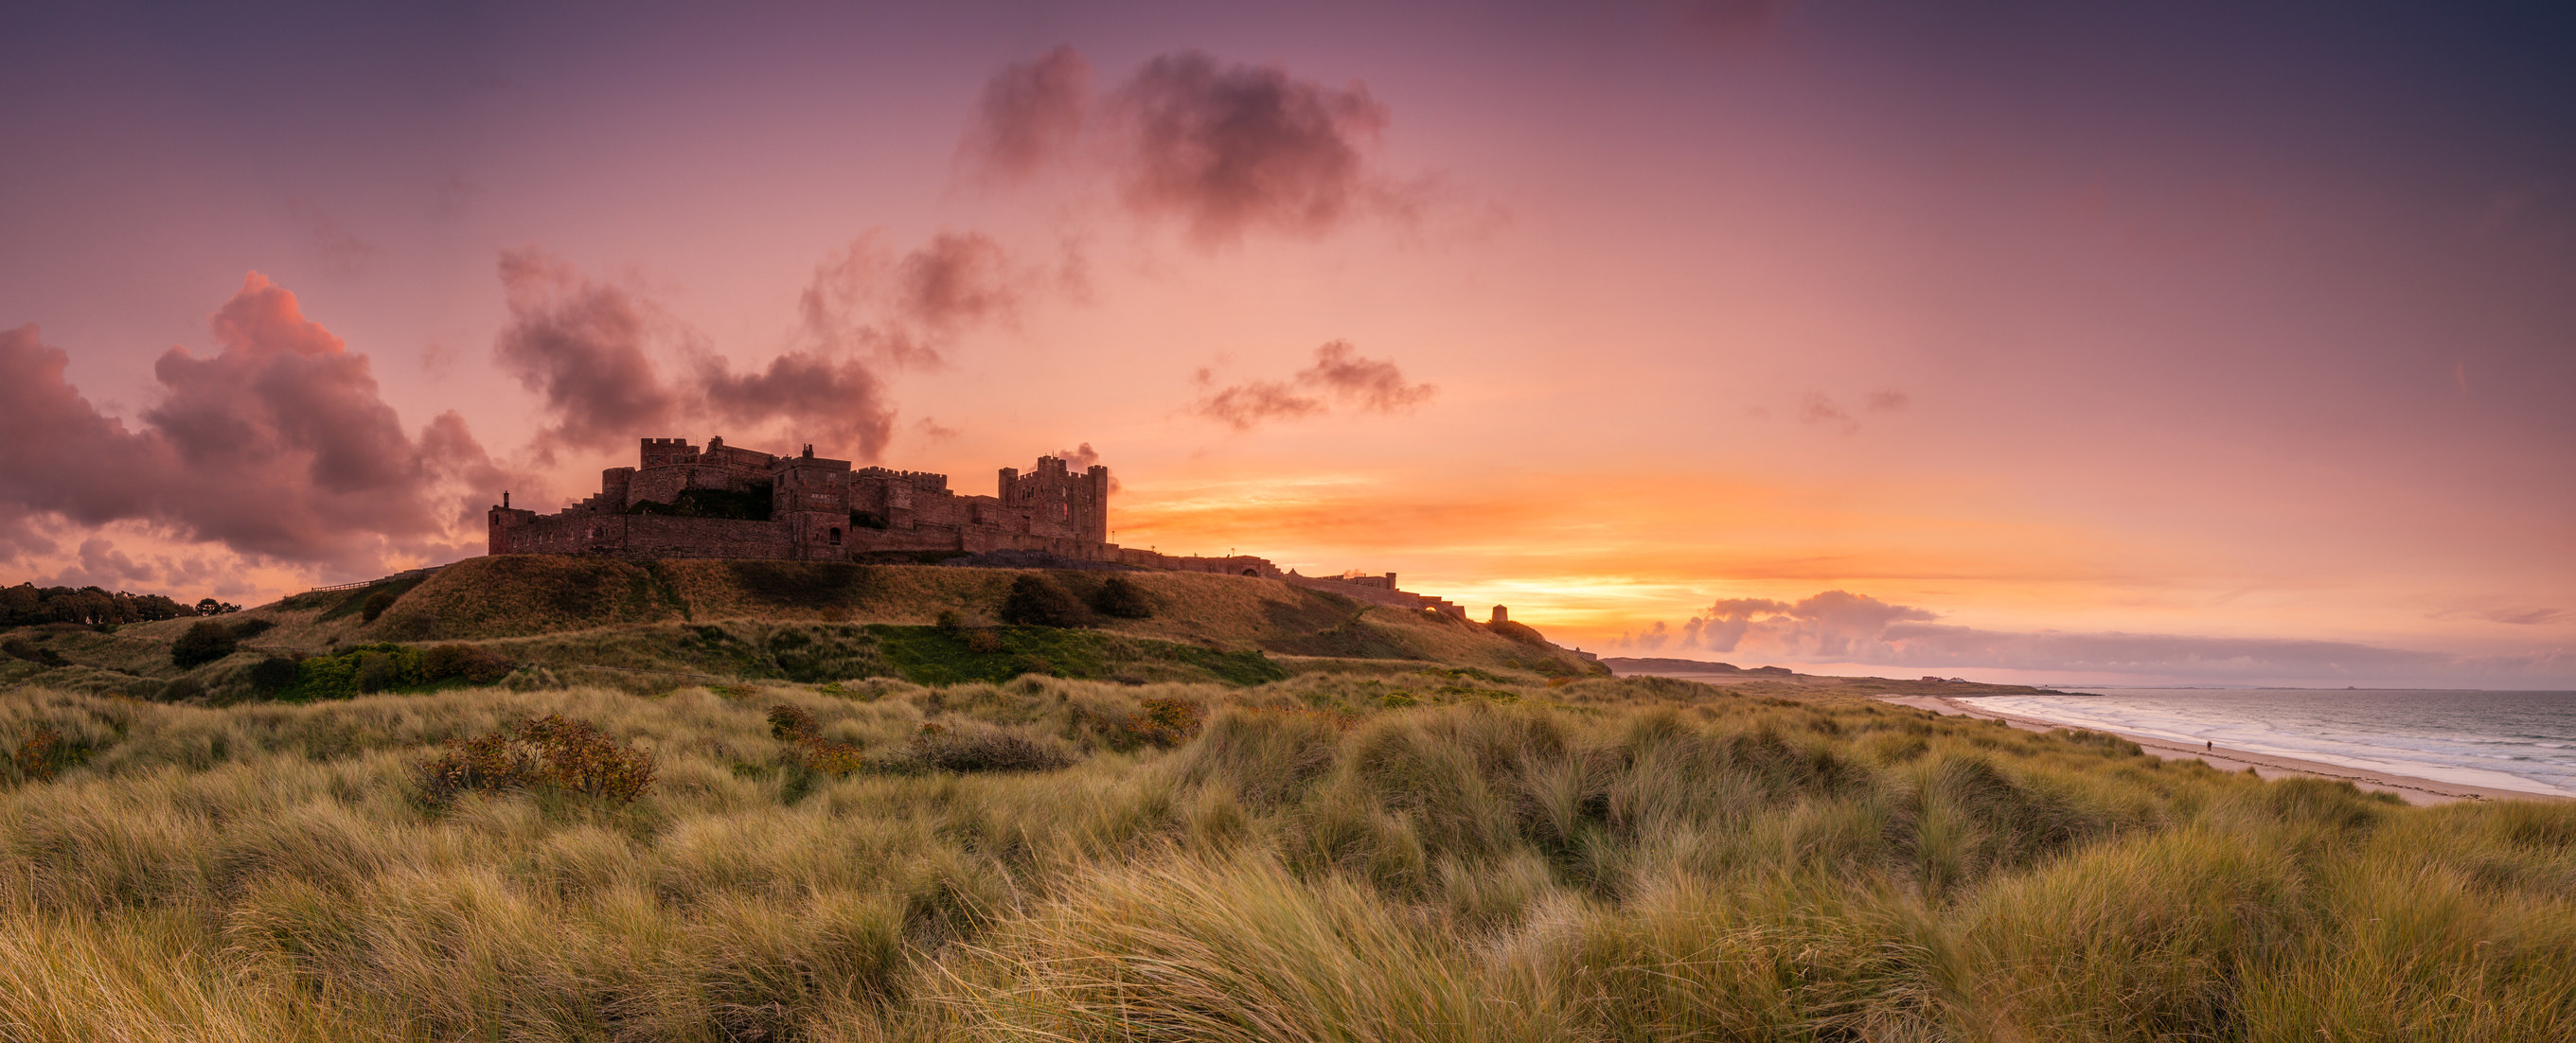 A pink and gold sunset view across Bamburgh castle and the beach in Northumberland